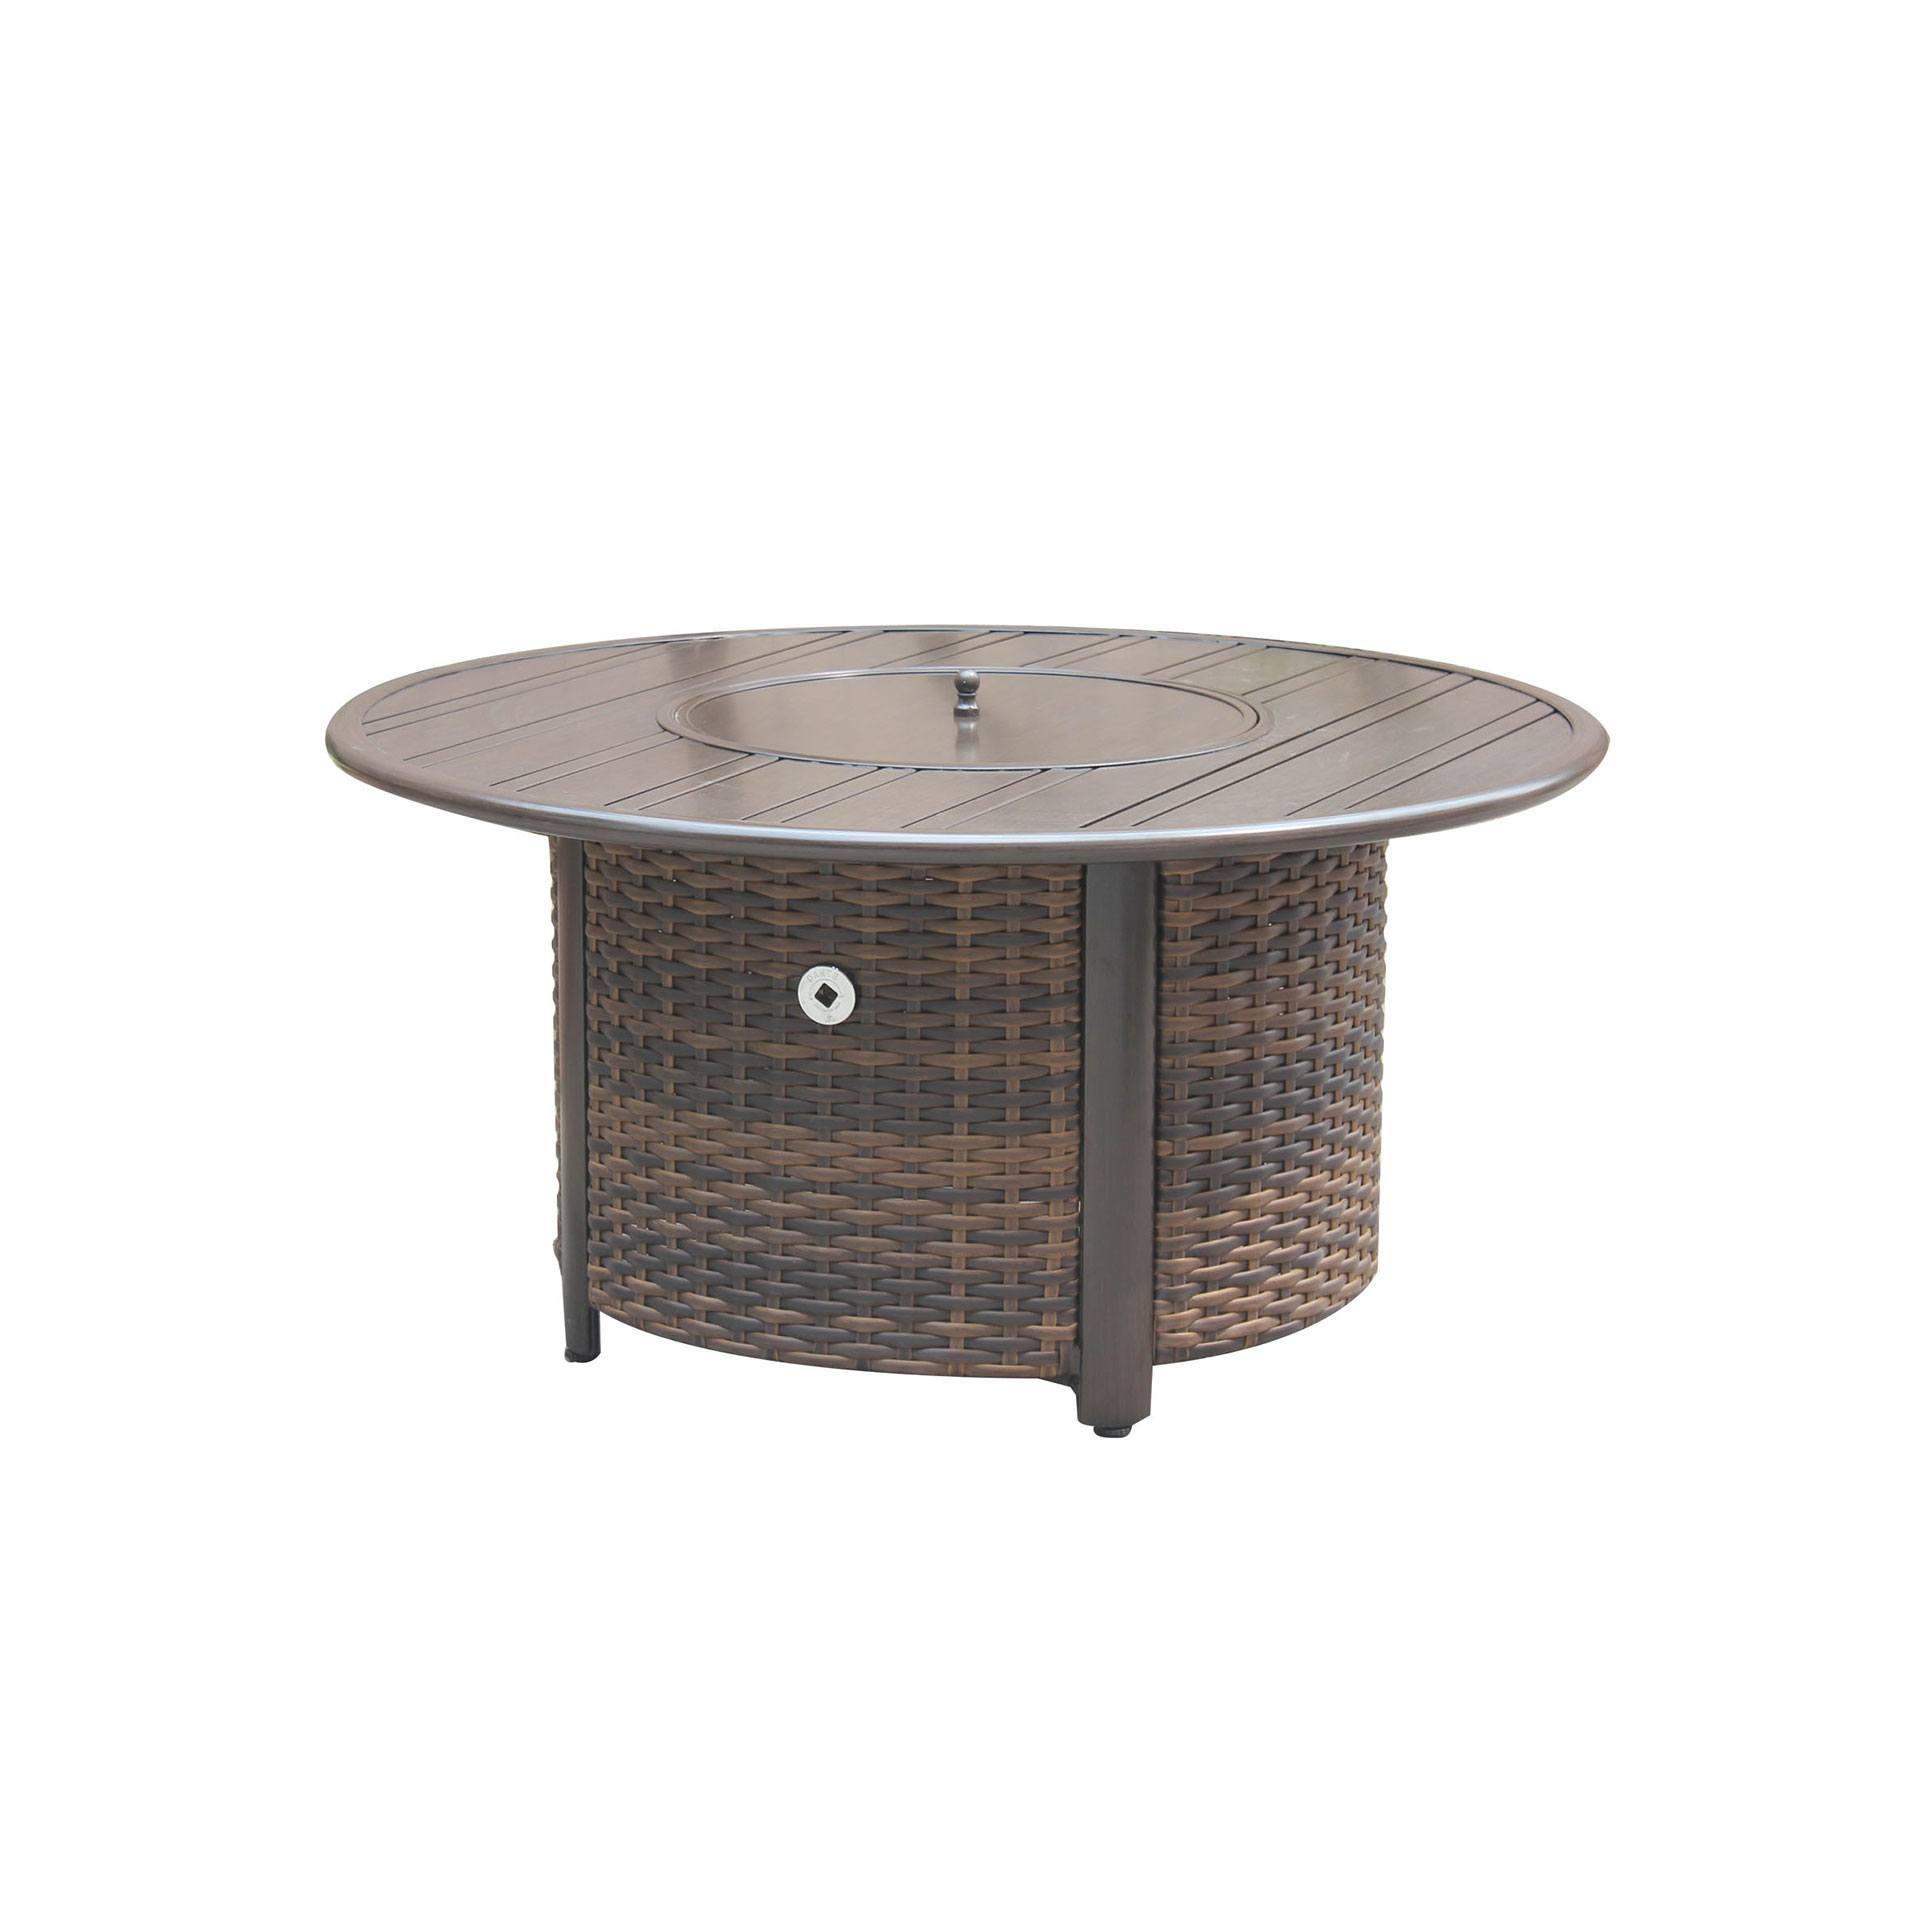 Ratana Pozzo Woven Base With A 48 Quot Round Arlington Top And